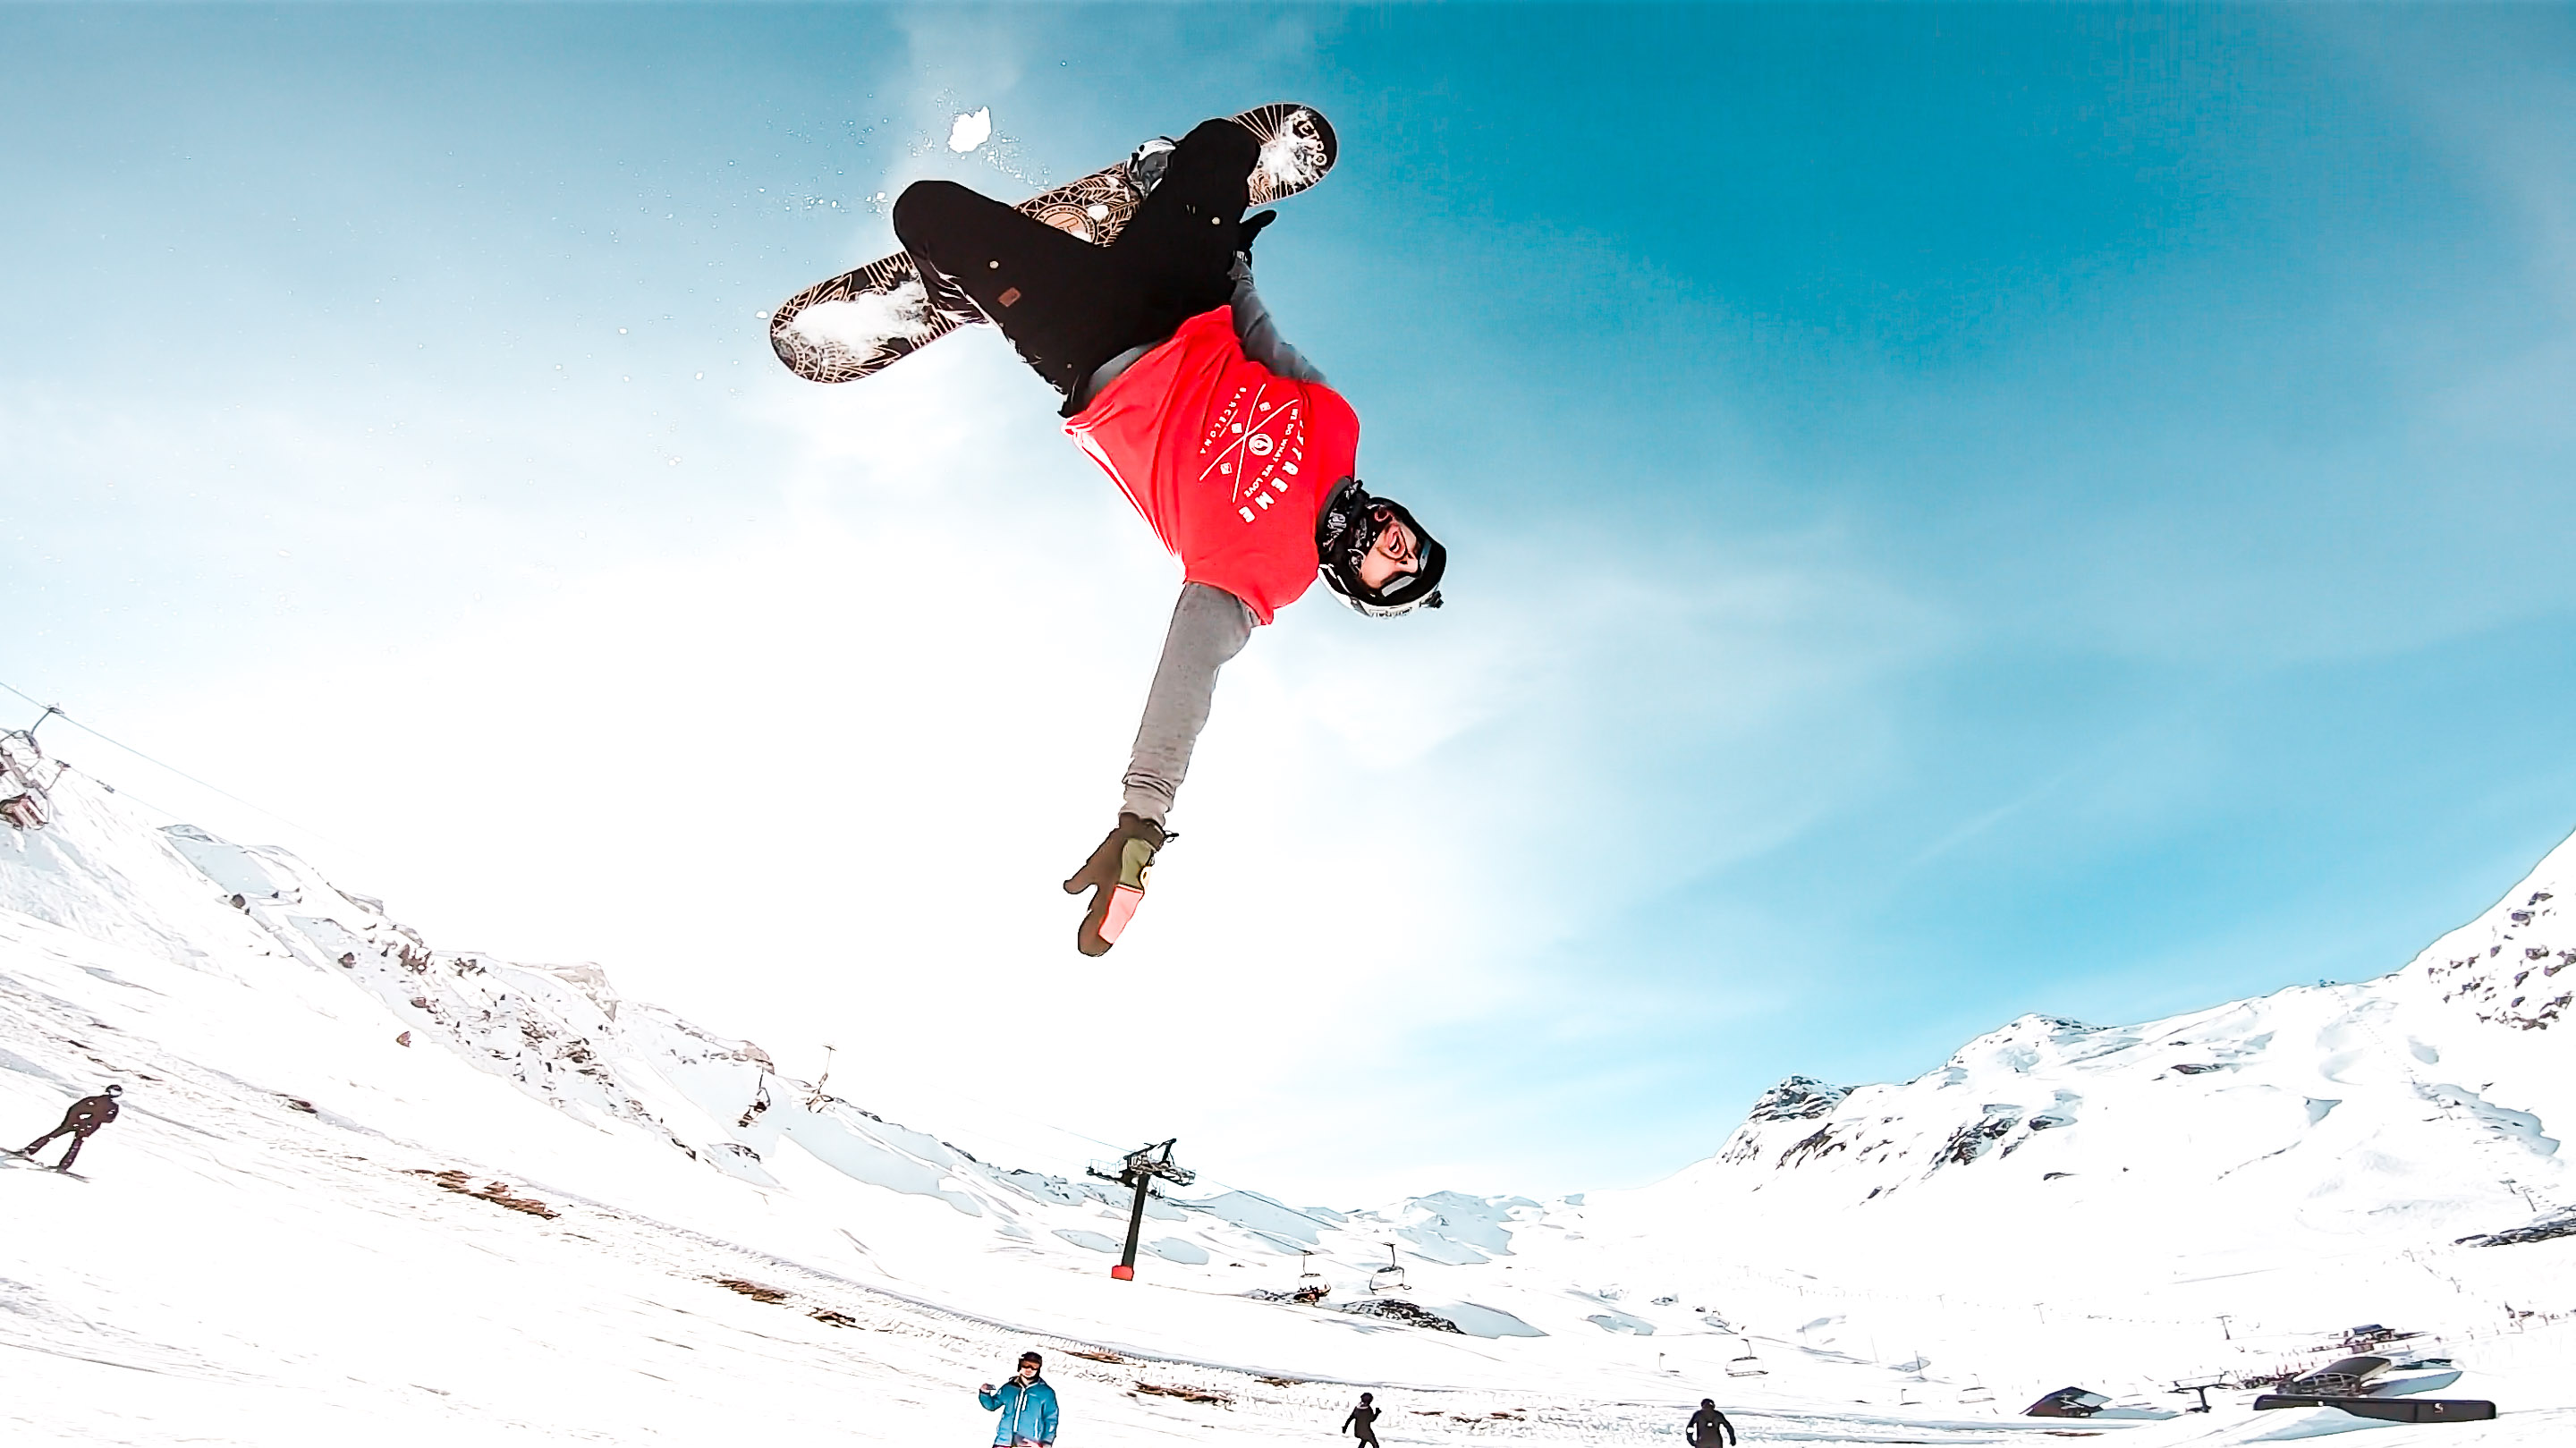 snowboard backflip